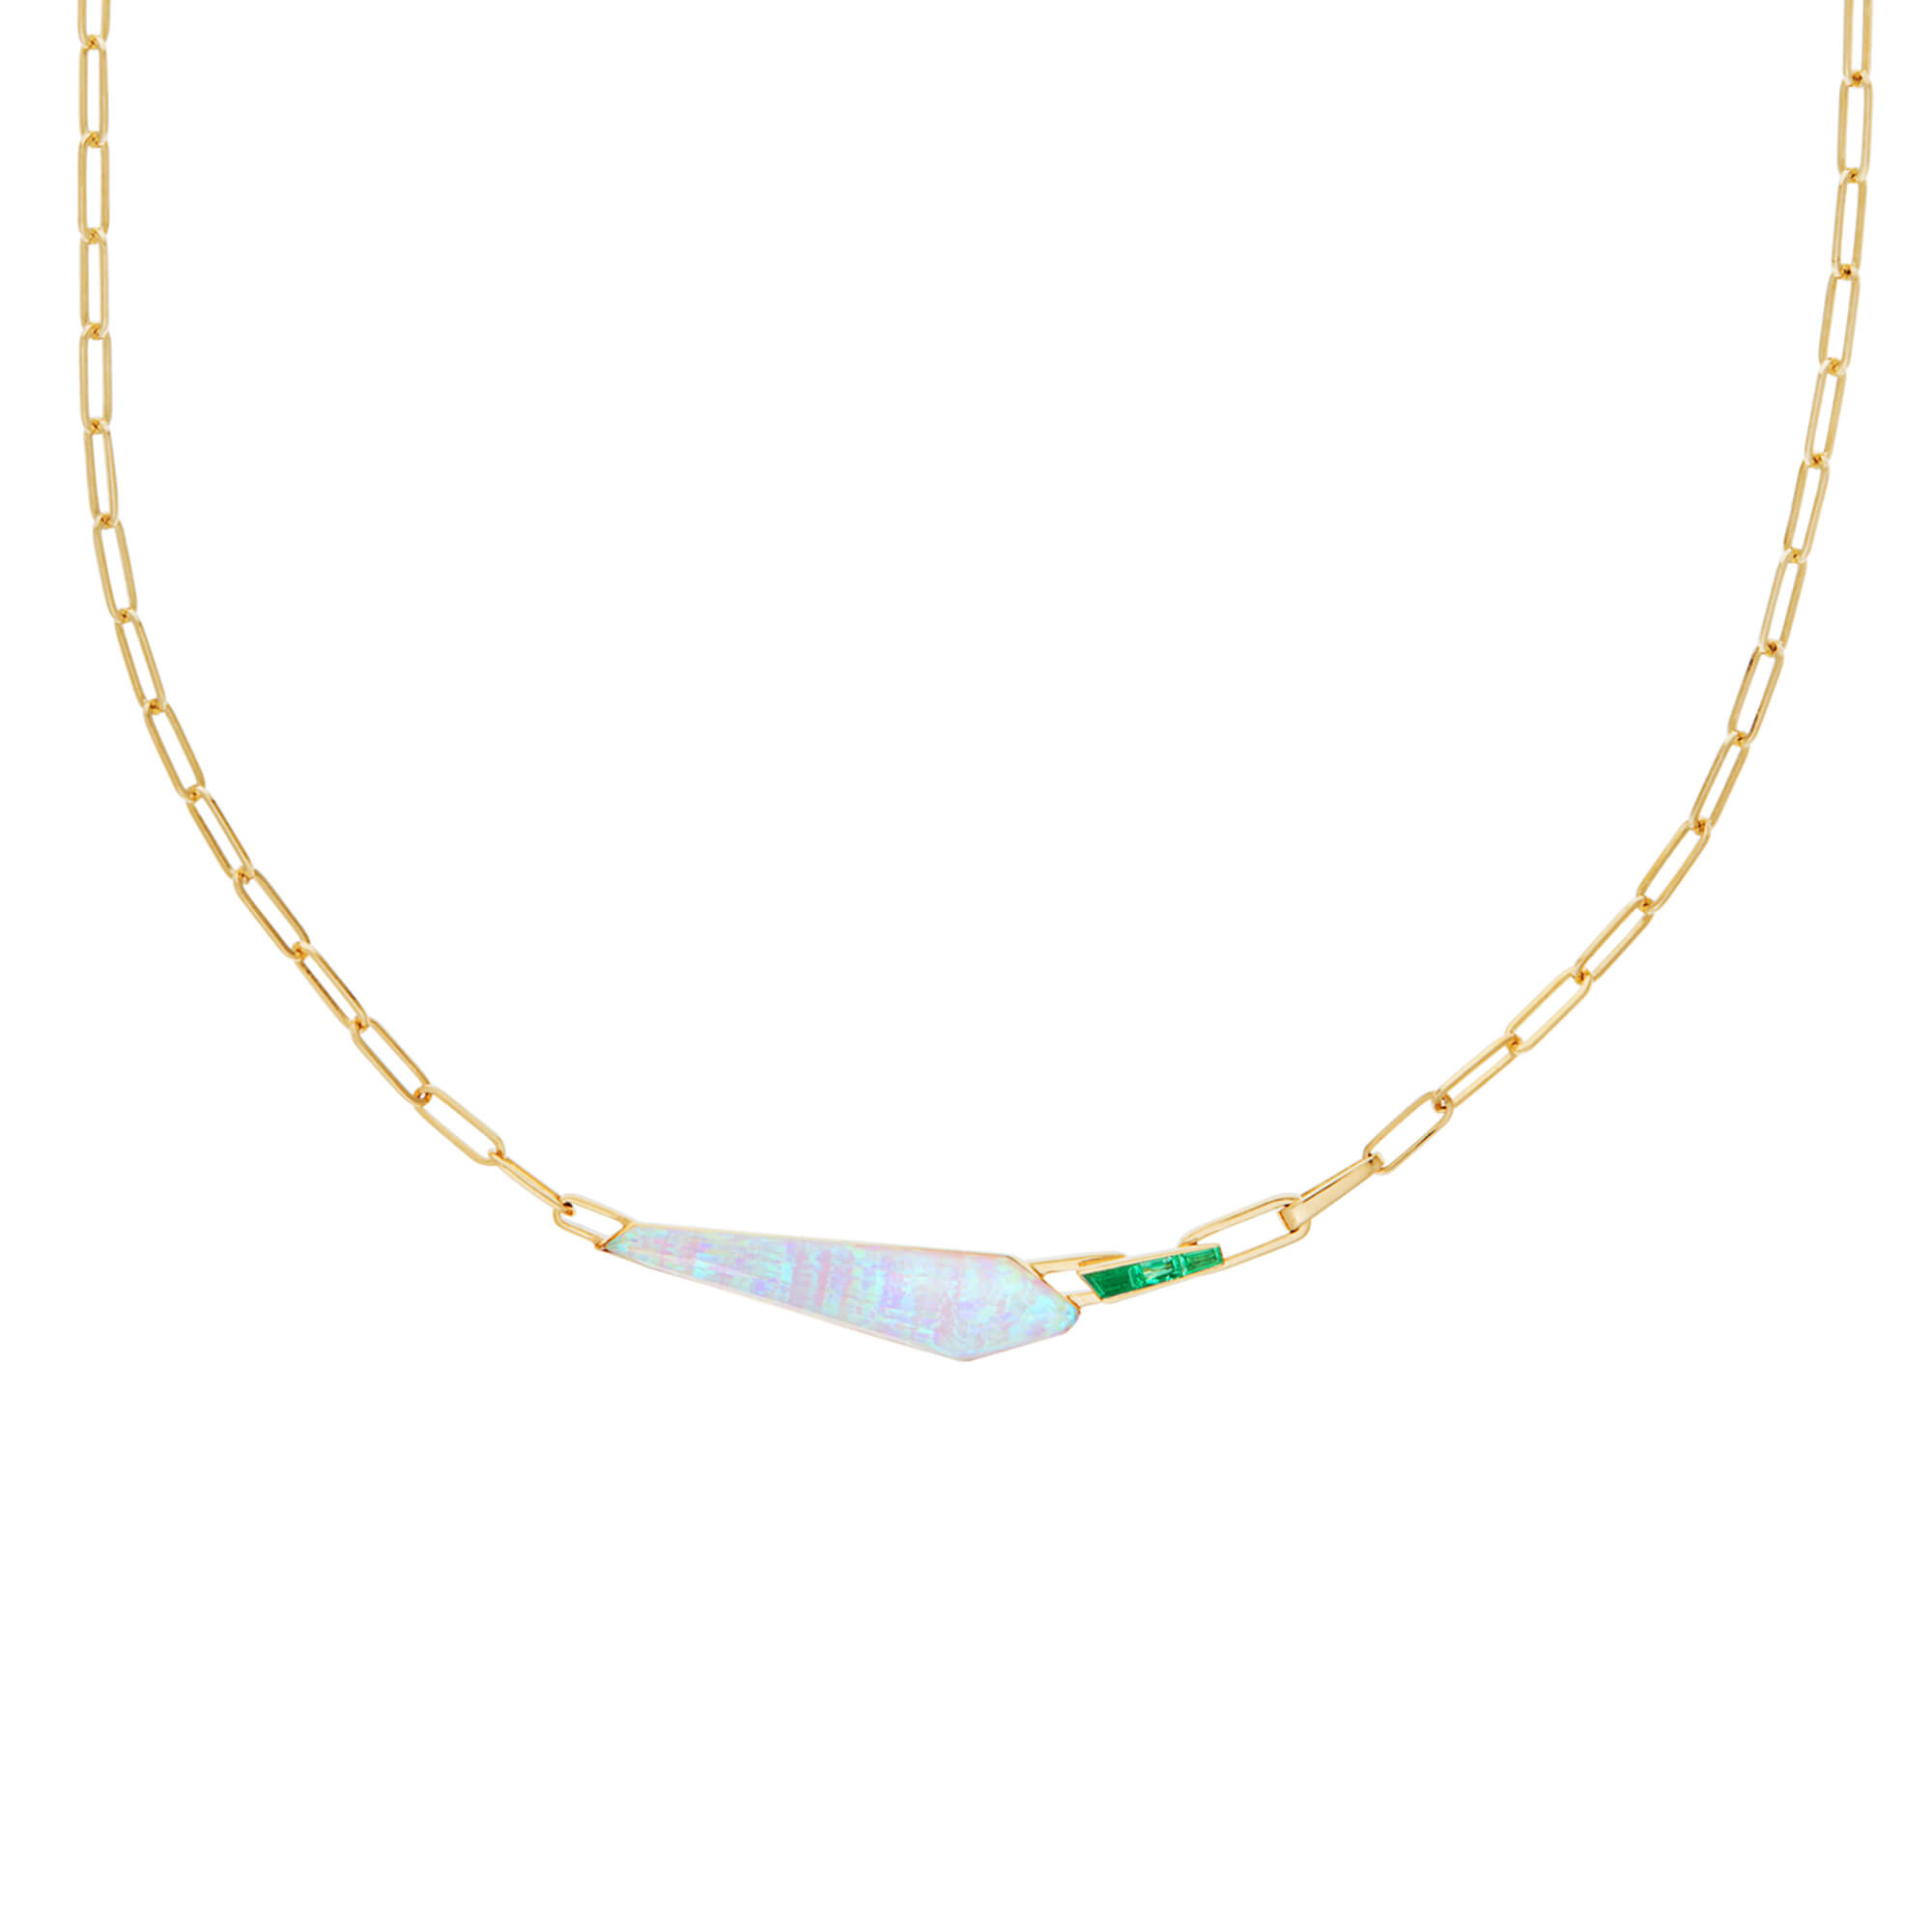 White Opalescent & Emerald Slimline Shard Linked Choker | CH₂